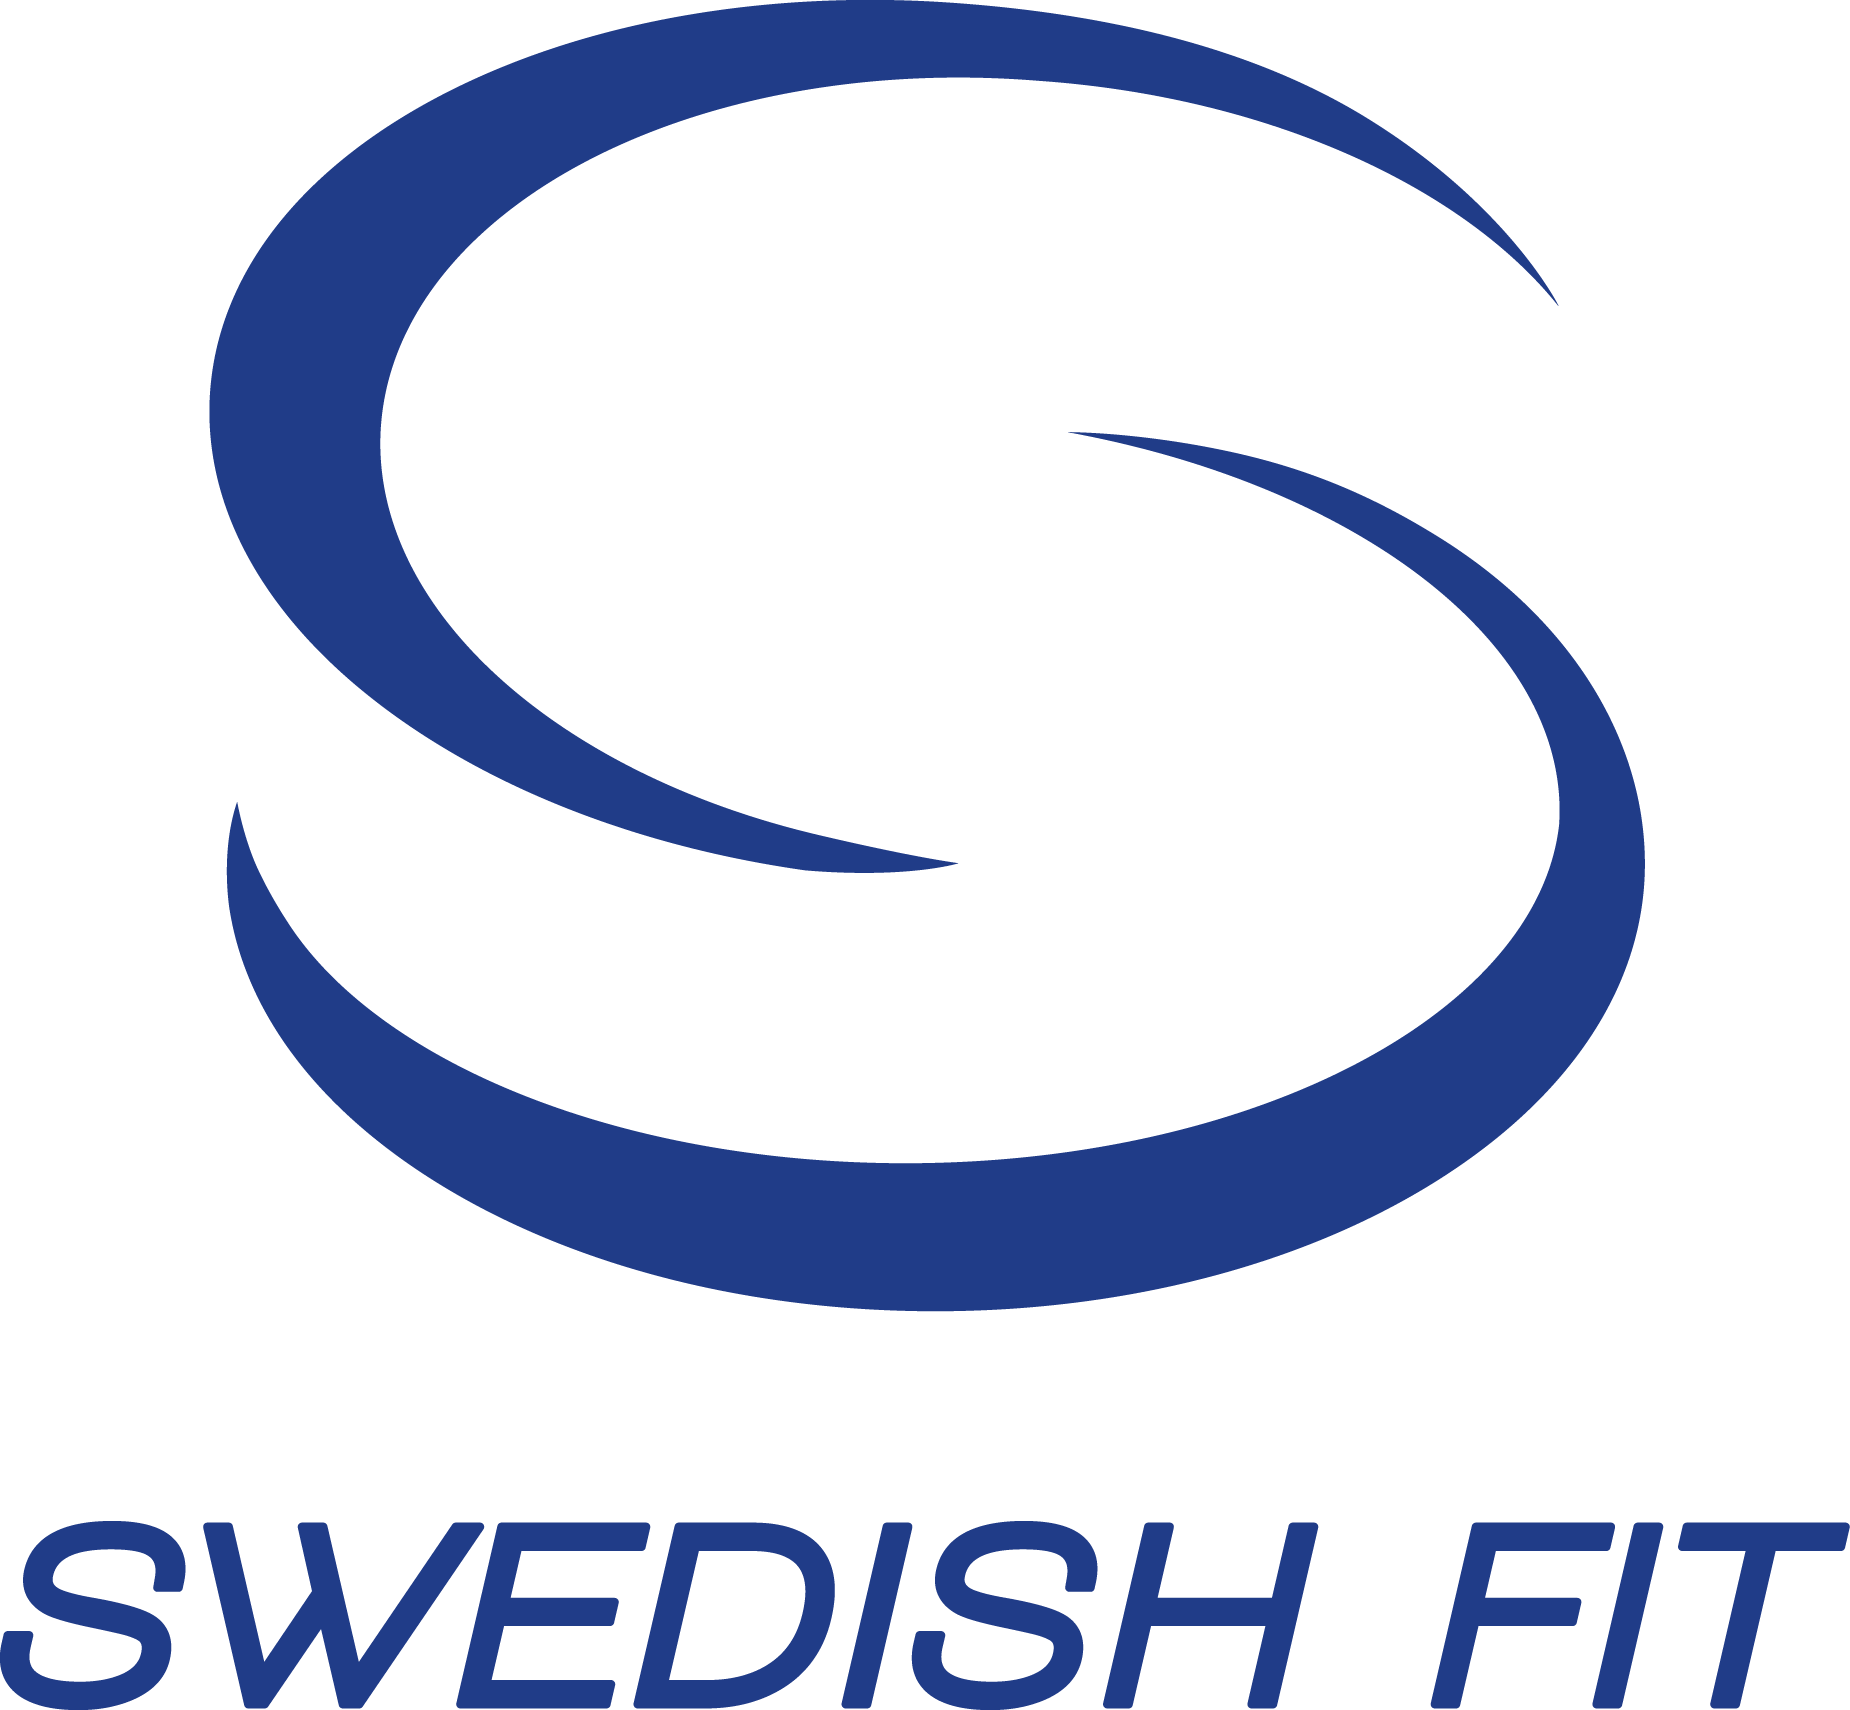 Swedish fit- LOGO_bleu_RVB_transparent